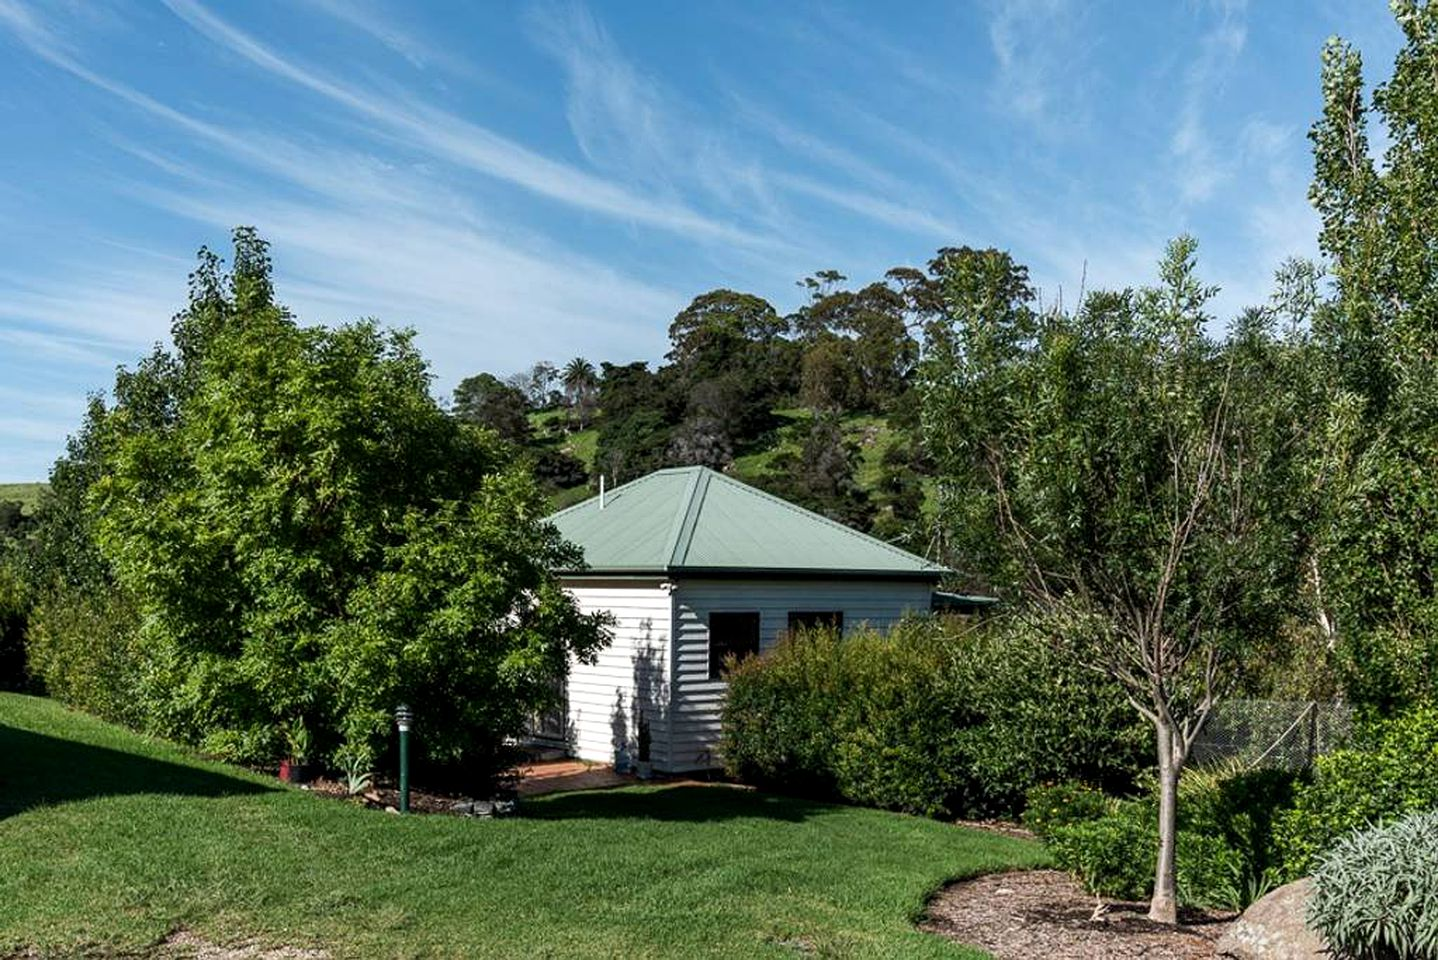 Cottages (Central Tilba, New South Wales, Australia)